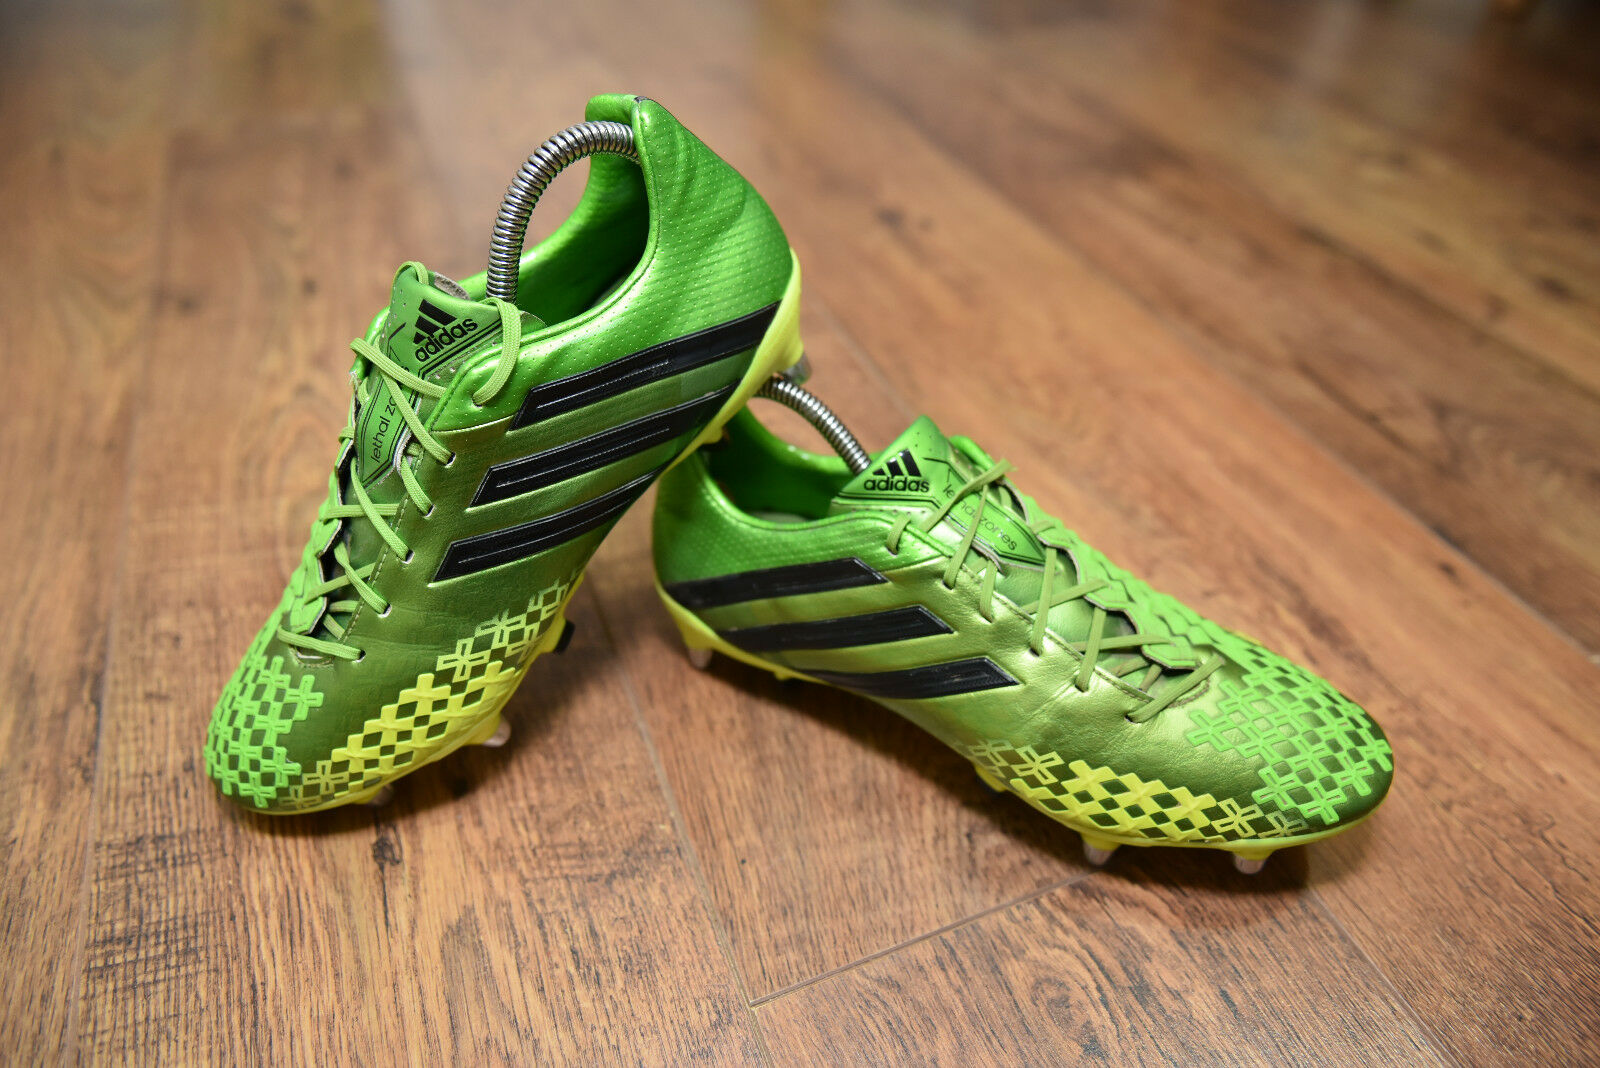 Adidas Predator Lethal Zones SG Football Boots Extralight LZ VGC